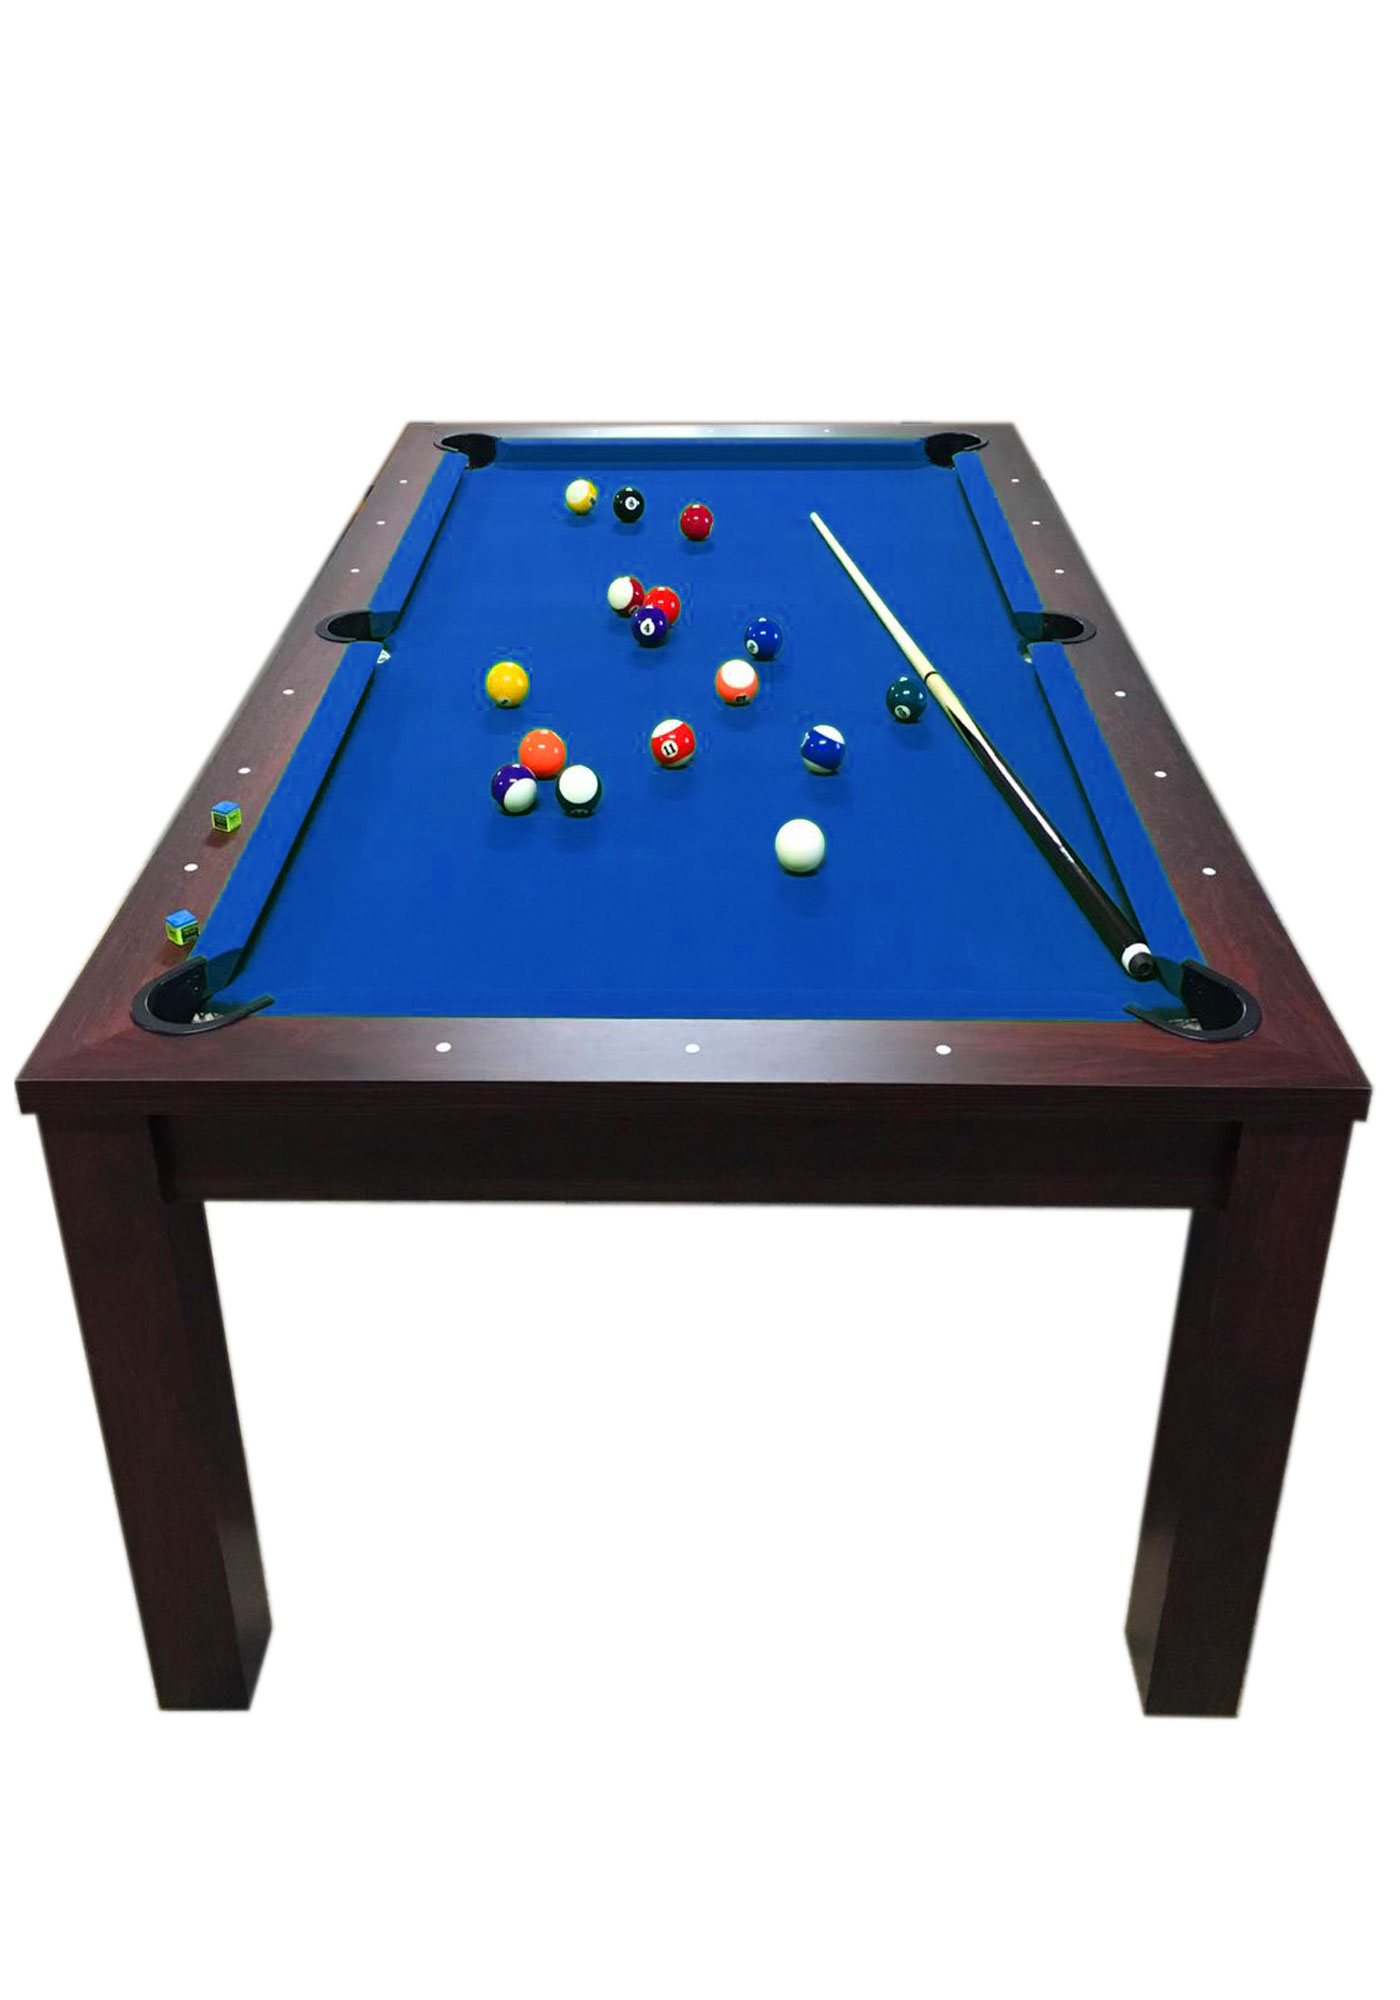 Remarkable Pool Table 7 Feet Blue And Dinner Table With Benches Rich Blue Pdpeps Interior Chair Design Pdpepsorg